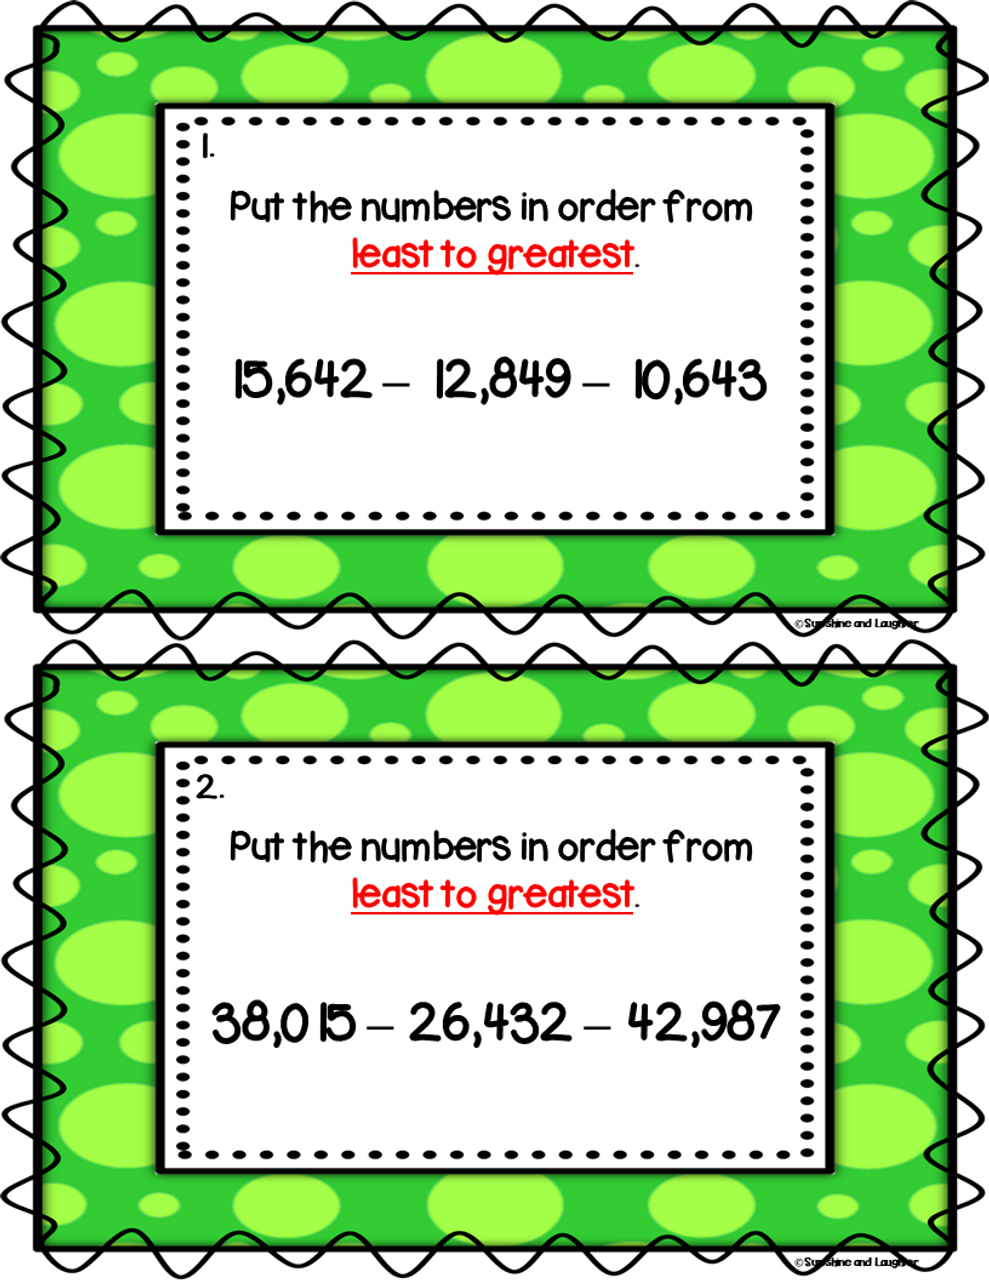 Number Order Scoot - 10,000's